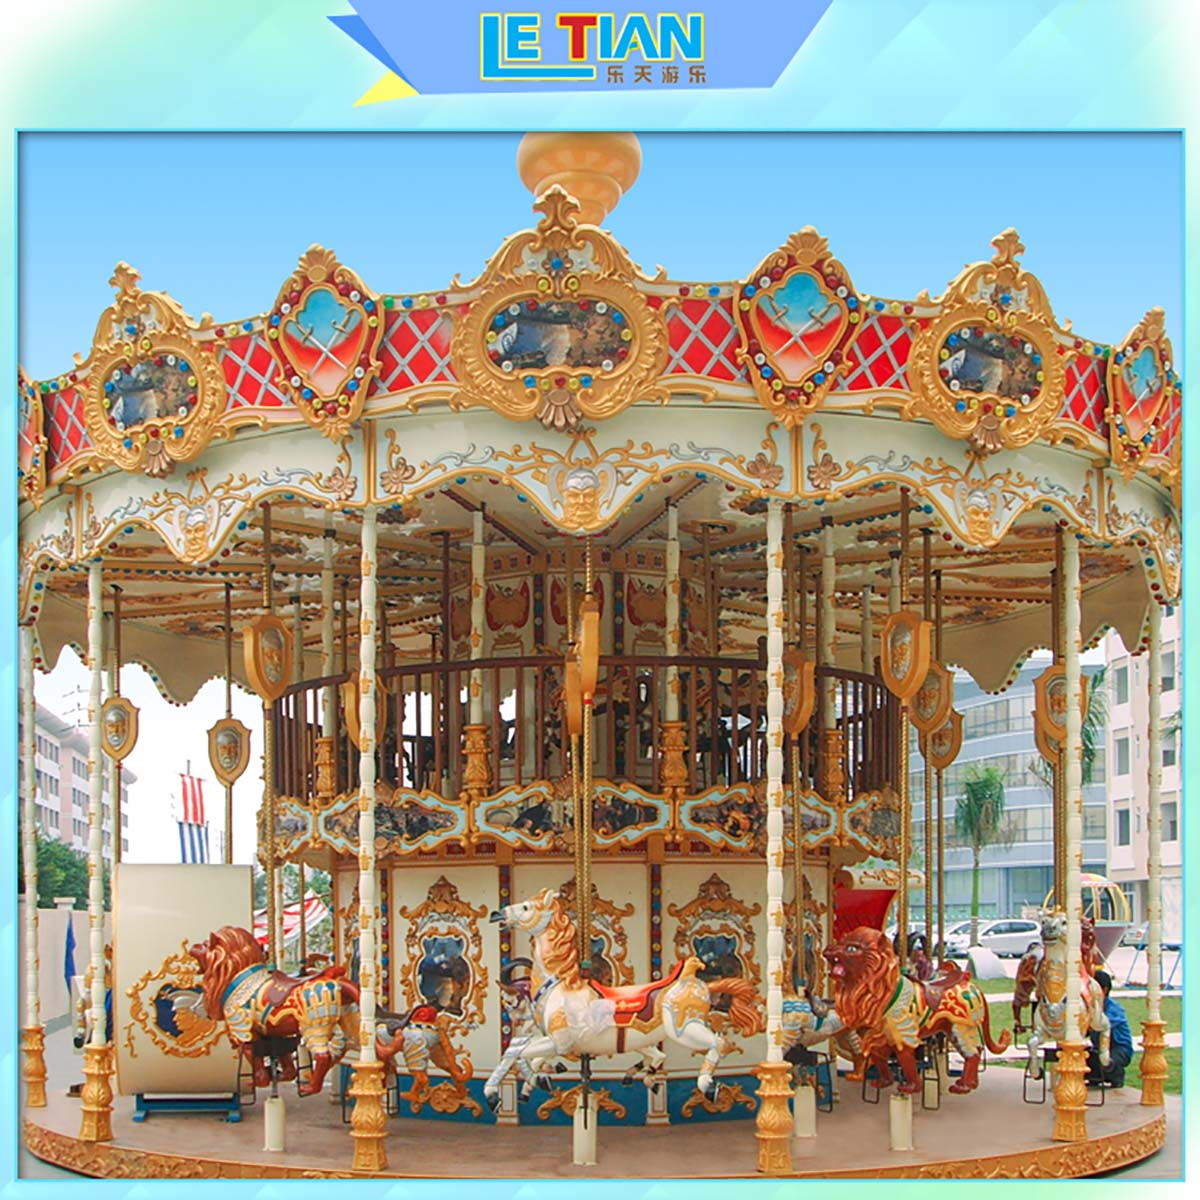 LETIAN Wholesale carousel ride Suppliers shopping centers-2